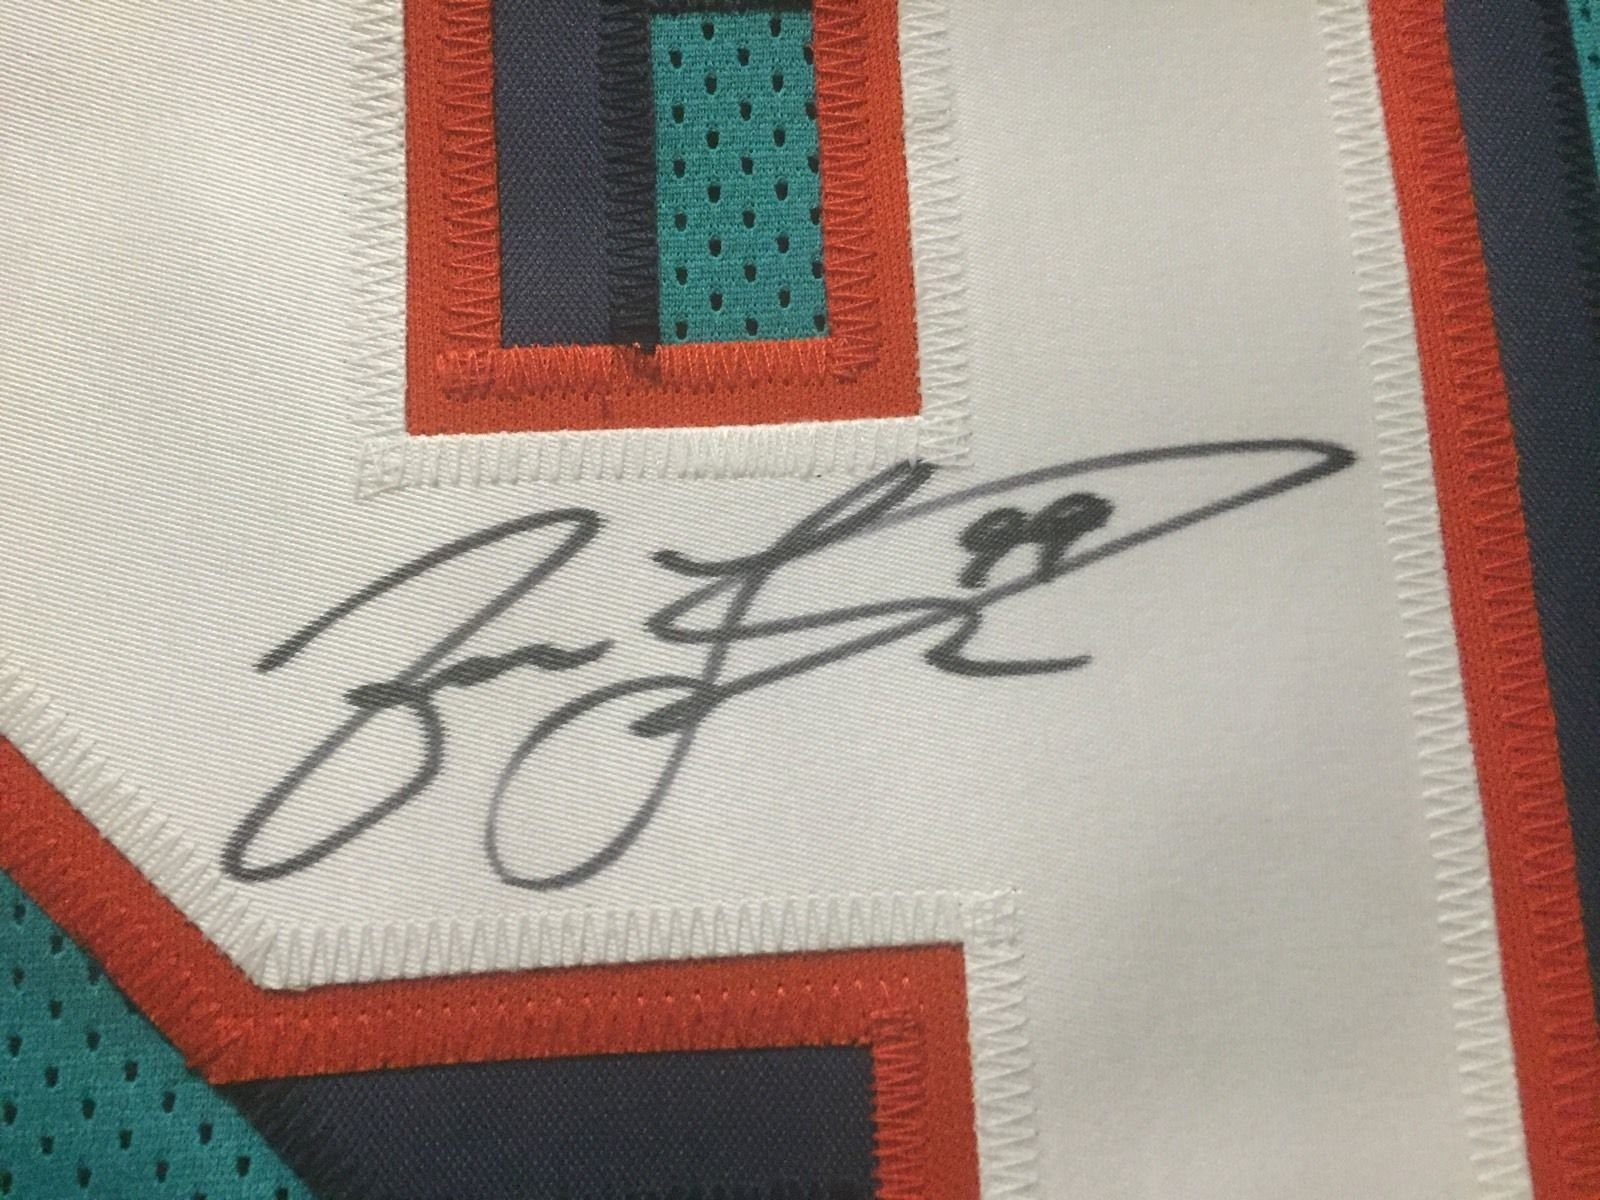 Autographed/Signed Jason Taylor Miami Teal Football Jersey JSA COA